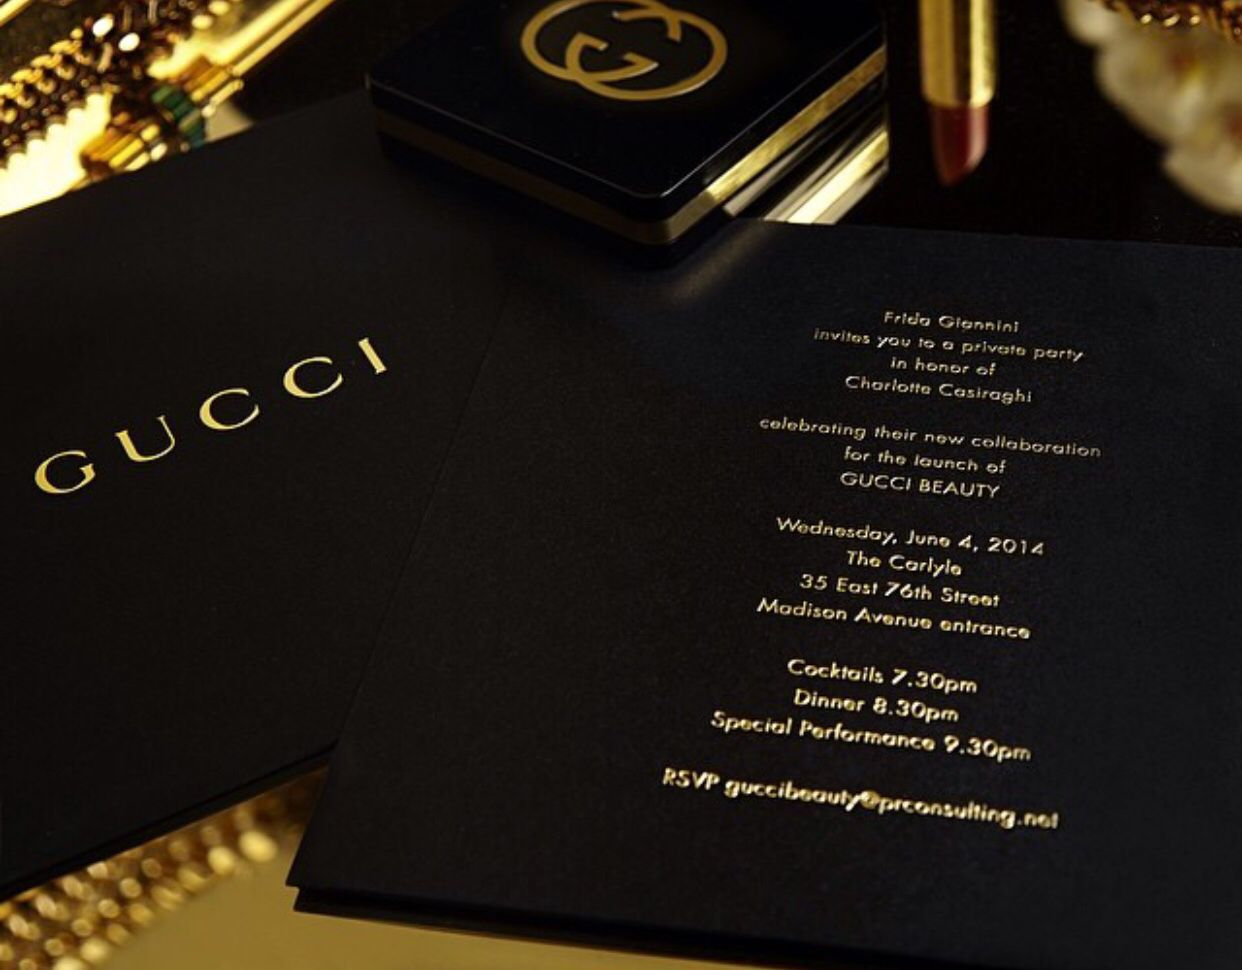 Gucci, Invitations